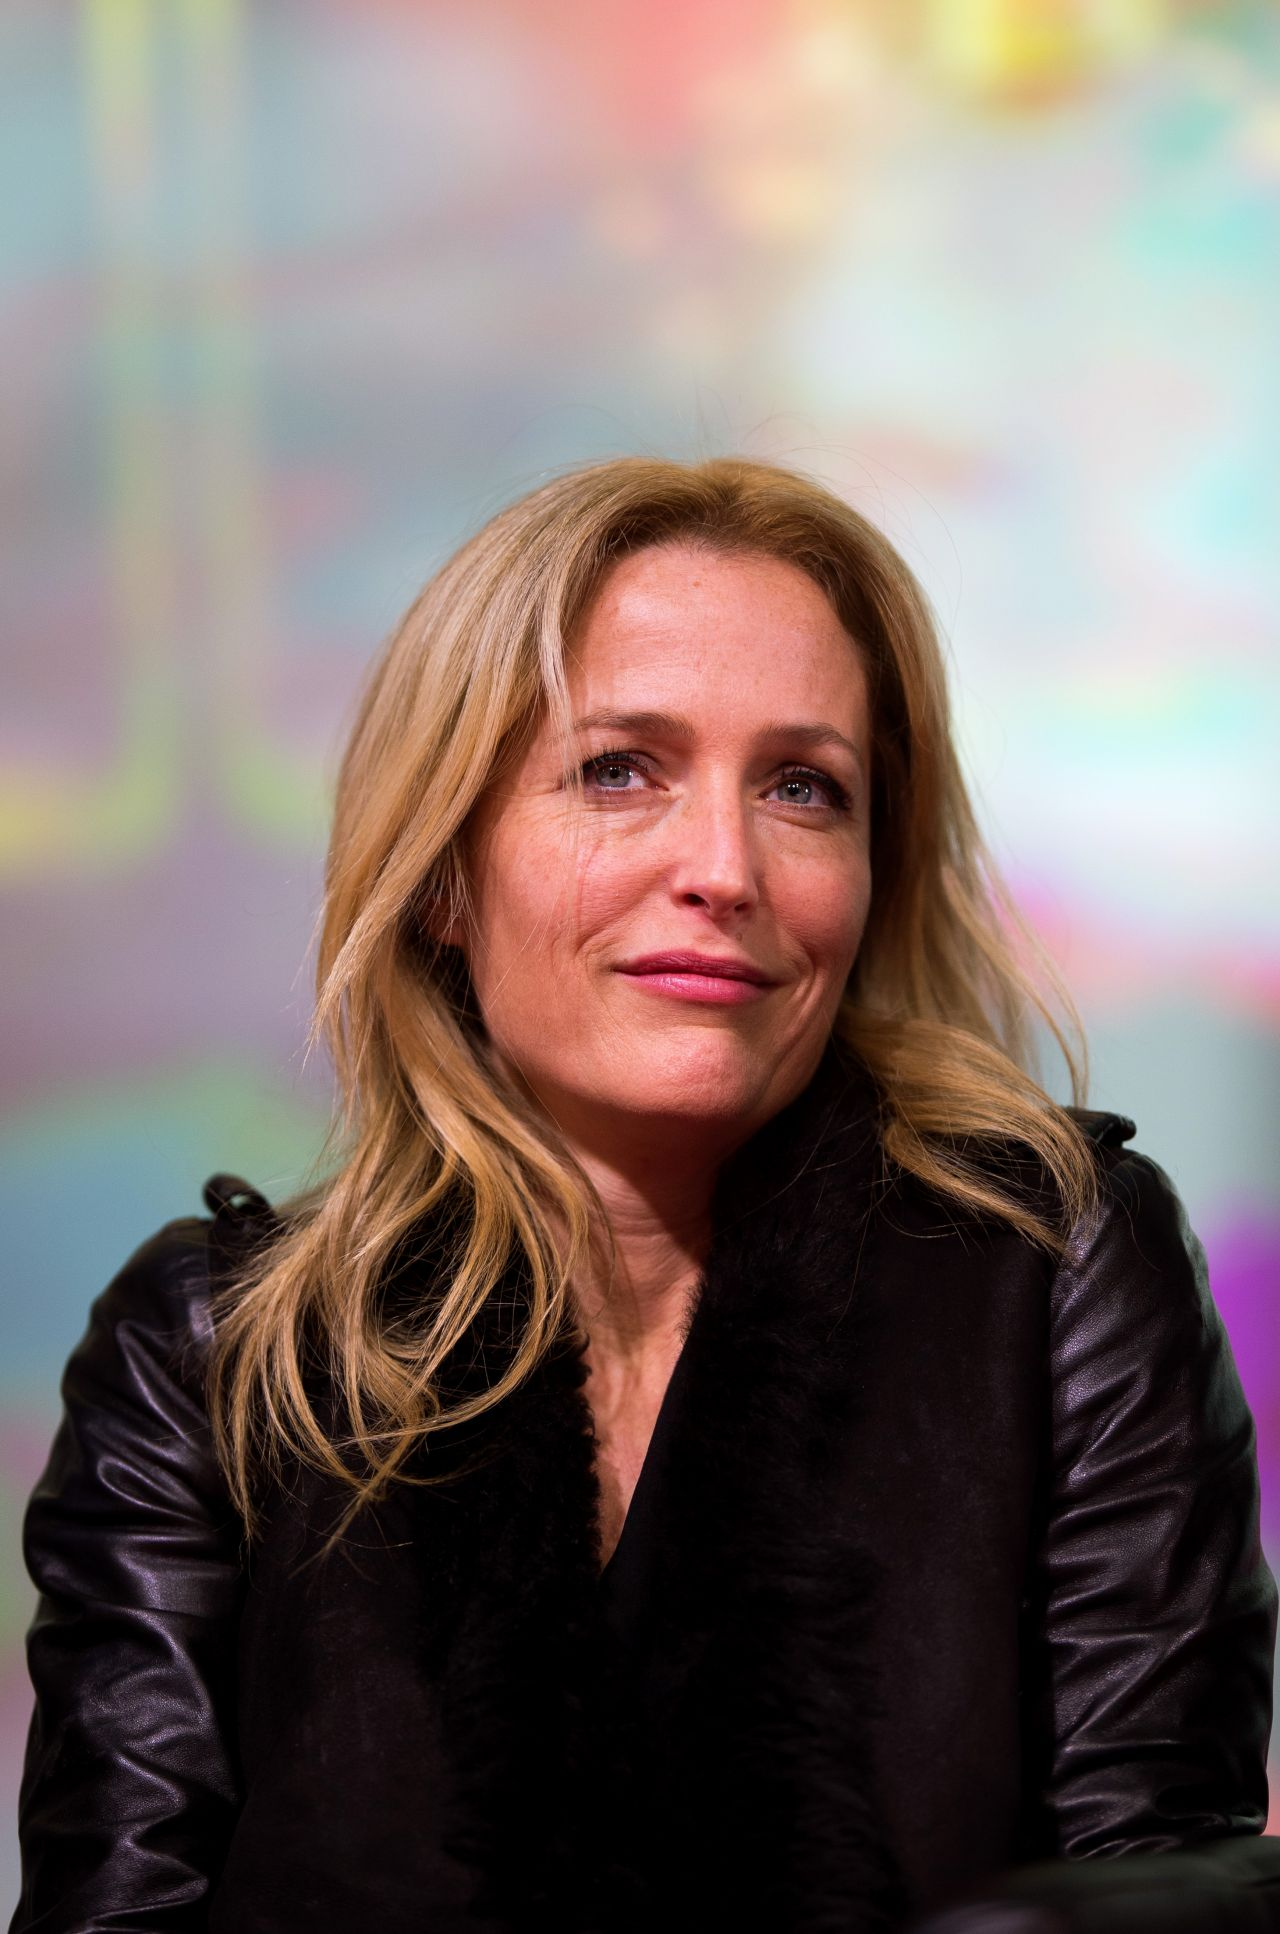 Gillian Anderson The X Files Meet And Greet Promo In